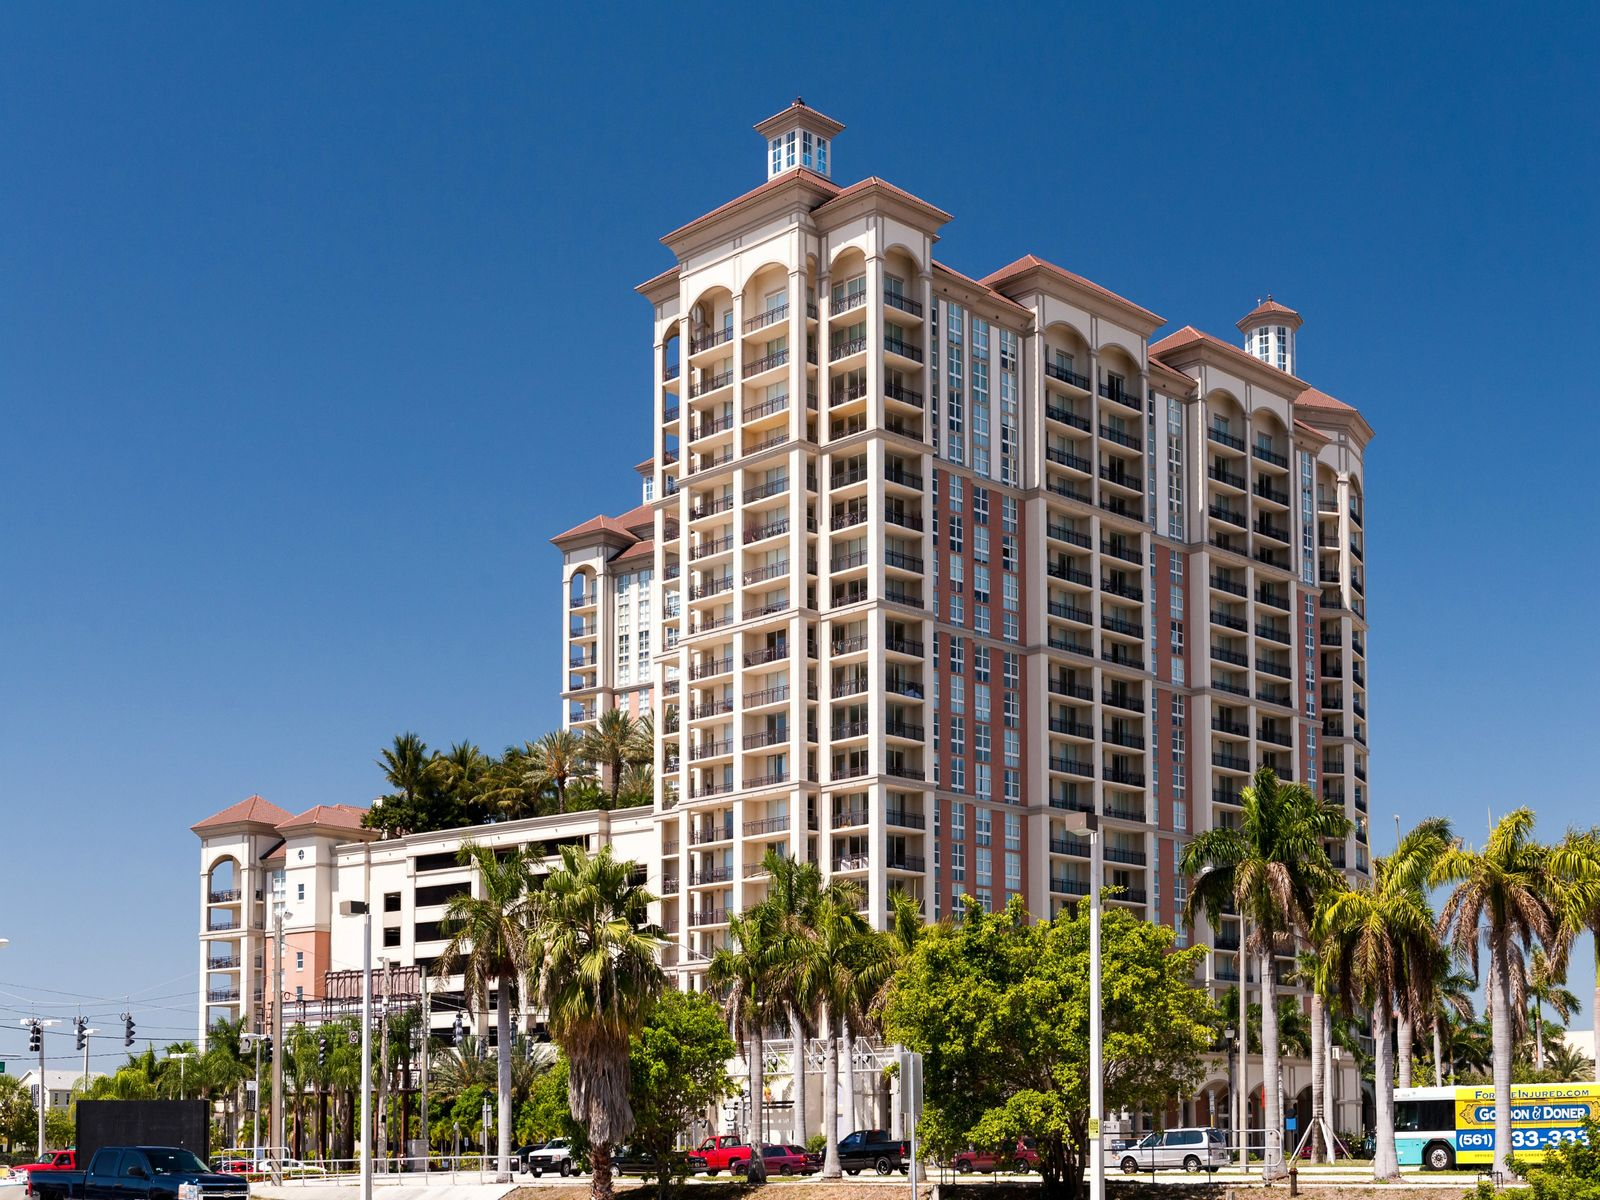 550 Okeechobee Blvd , West Palm Beach FL Condominium - Palm Beach Real Estate